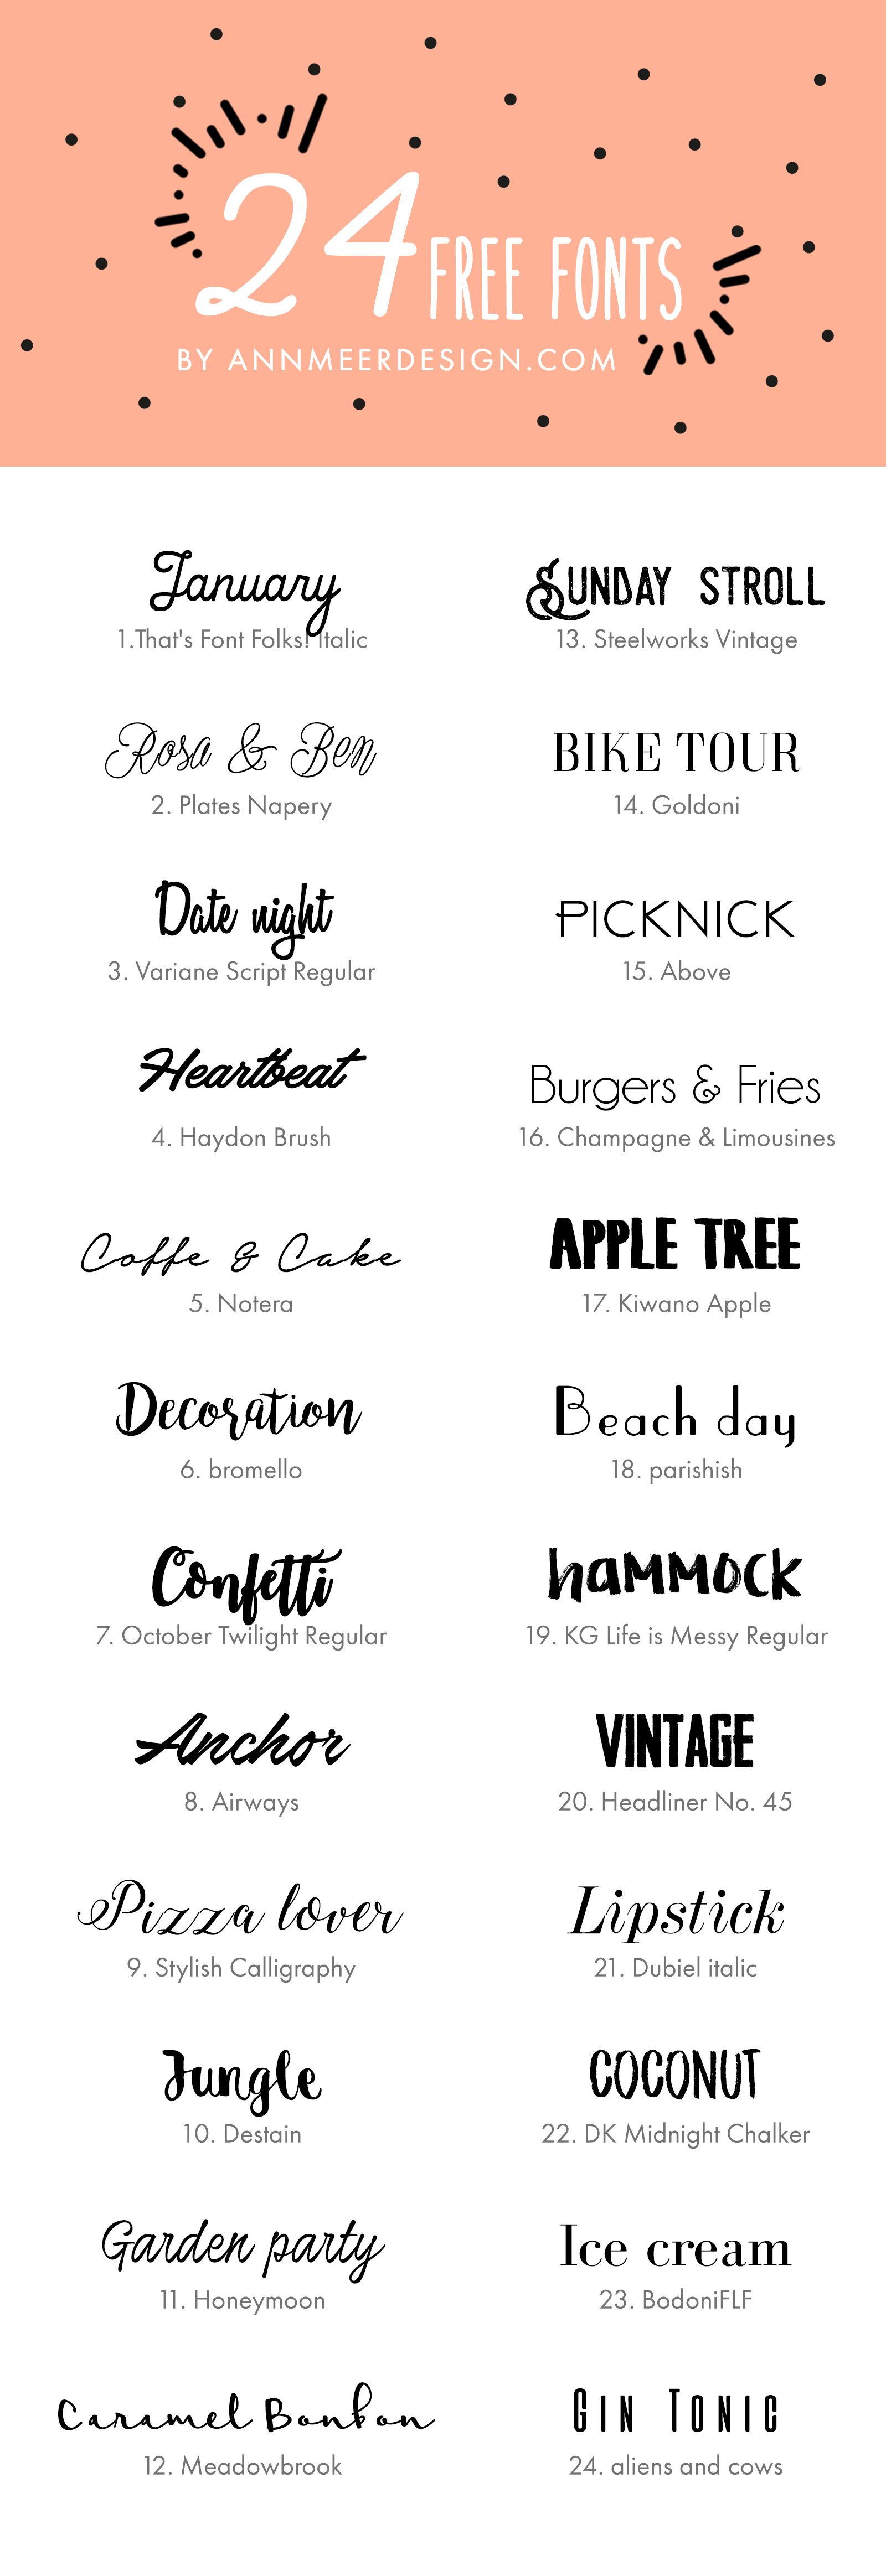 24 Free Fonts By Annmeerdesign Com Be Featured In Model Citizen App